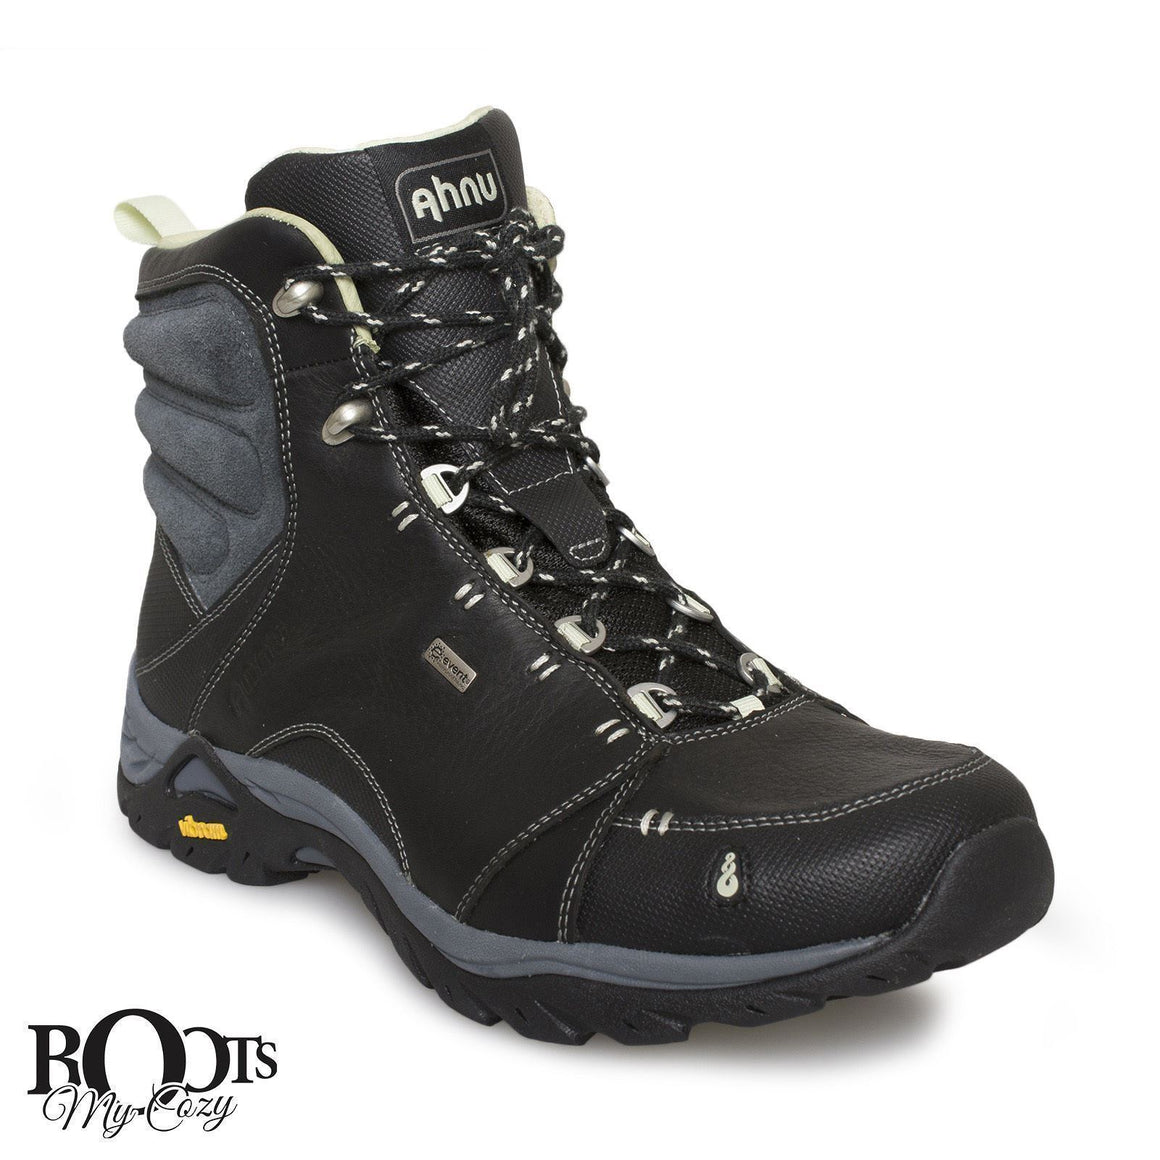 AHNU MONTARA BLACK WP HIKING BOOTS